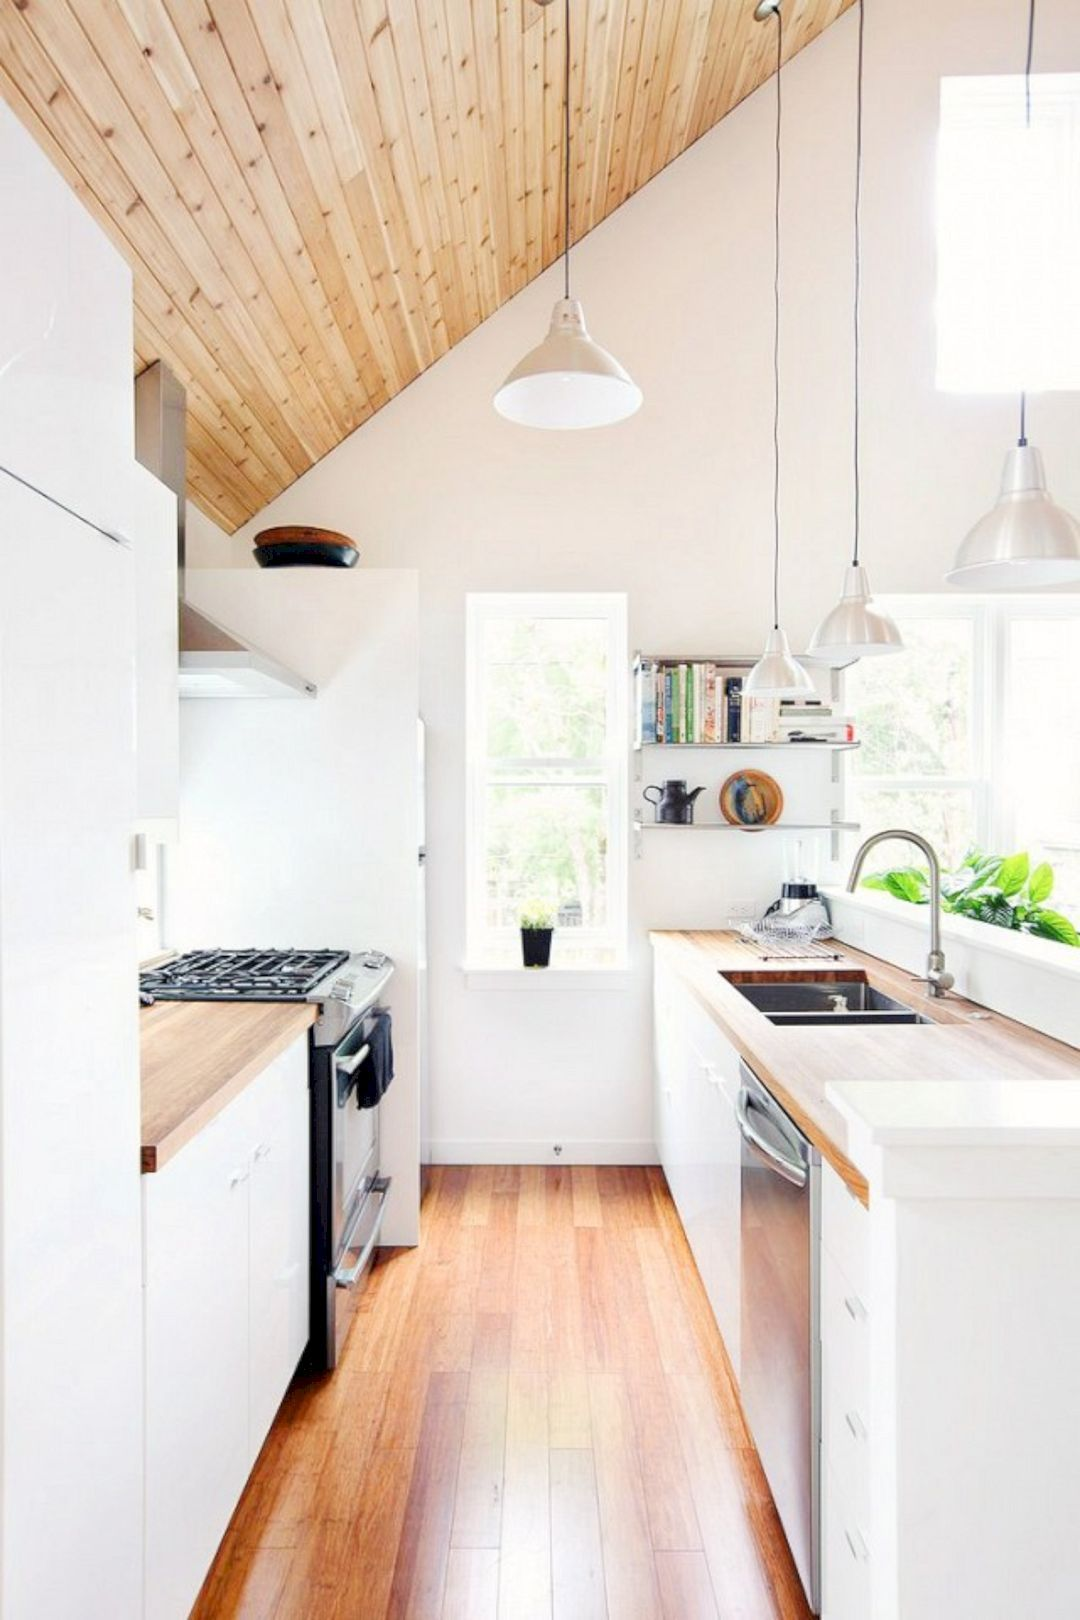 These Kitchen Layouts are Brilliant for Your Tiny House | Pinterest on unique house design ideas, internet design ideas, new york design ideas, narrow house design ideas, education design ideas, small bedroom decorating ideas, kitchen design ideas, big house design ideas, tiny drawing ideas, tiny painting ideas, tiny homes ideas, tiny decorating ideas, trailer design ideas, tiny houses on wheels, tiny room interior design, tiny garage ideas, simple living design ideas, travel design ideas, tiny wood ideas, cabin design ideas,